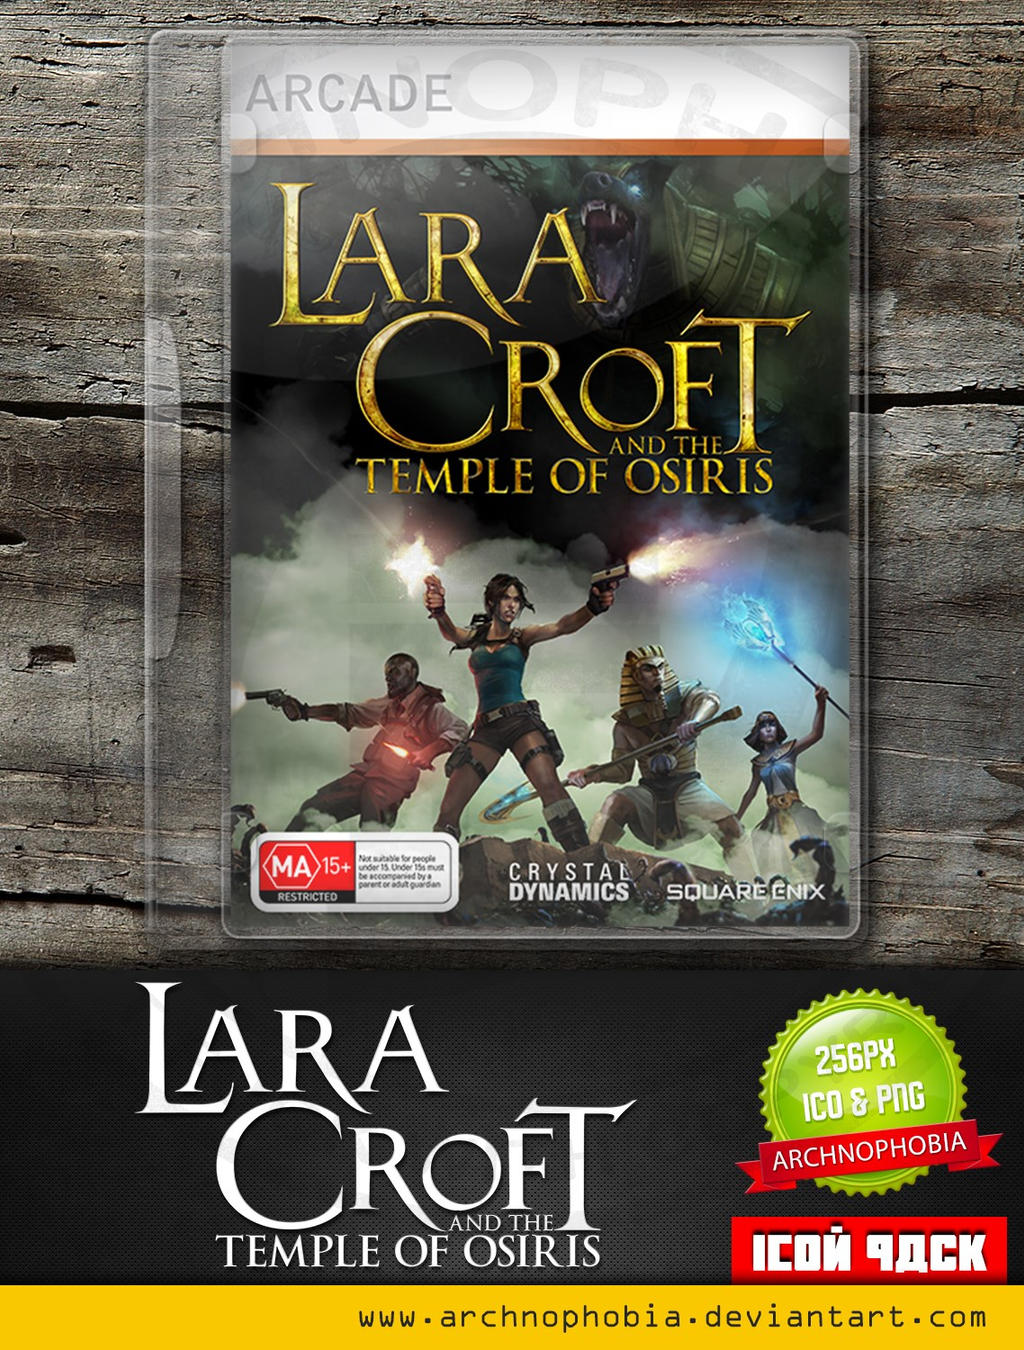 Lara Croft And The Temple Of Osiris (Icon Pack)